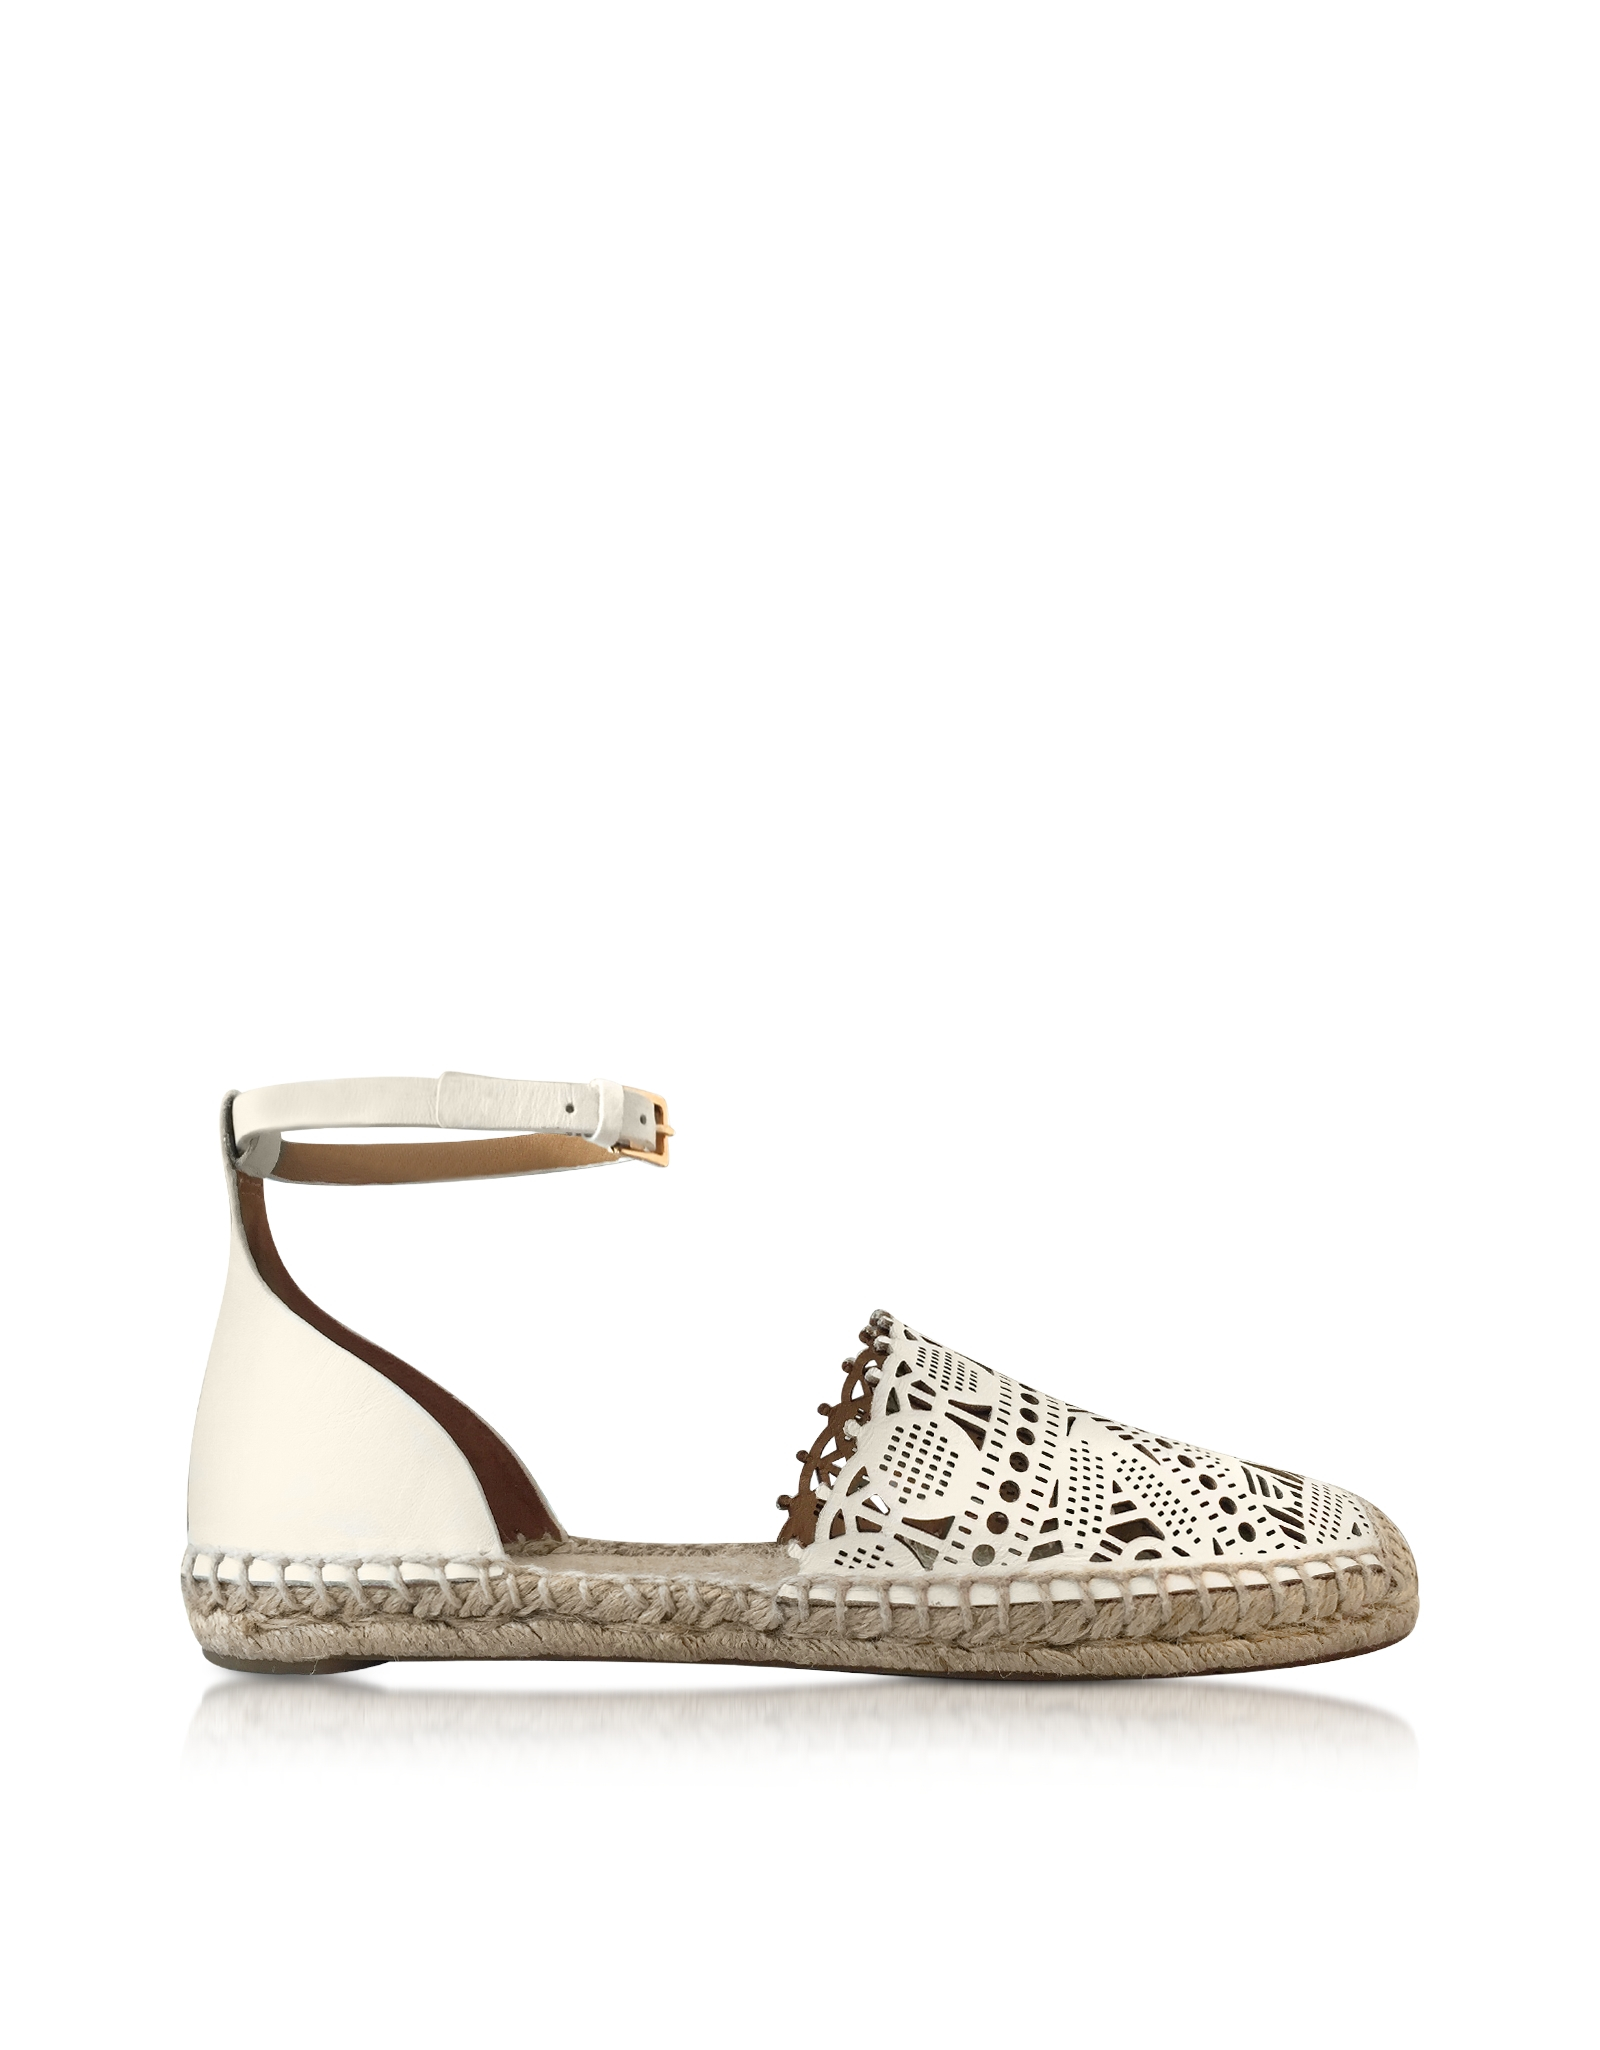 821d6443f270 Lyst - Tory Burch Roselle Ivory Nappa Flat Espadrille in White